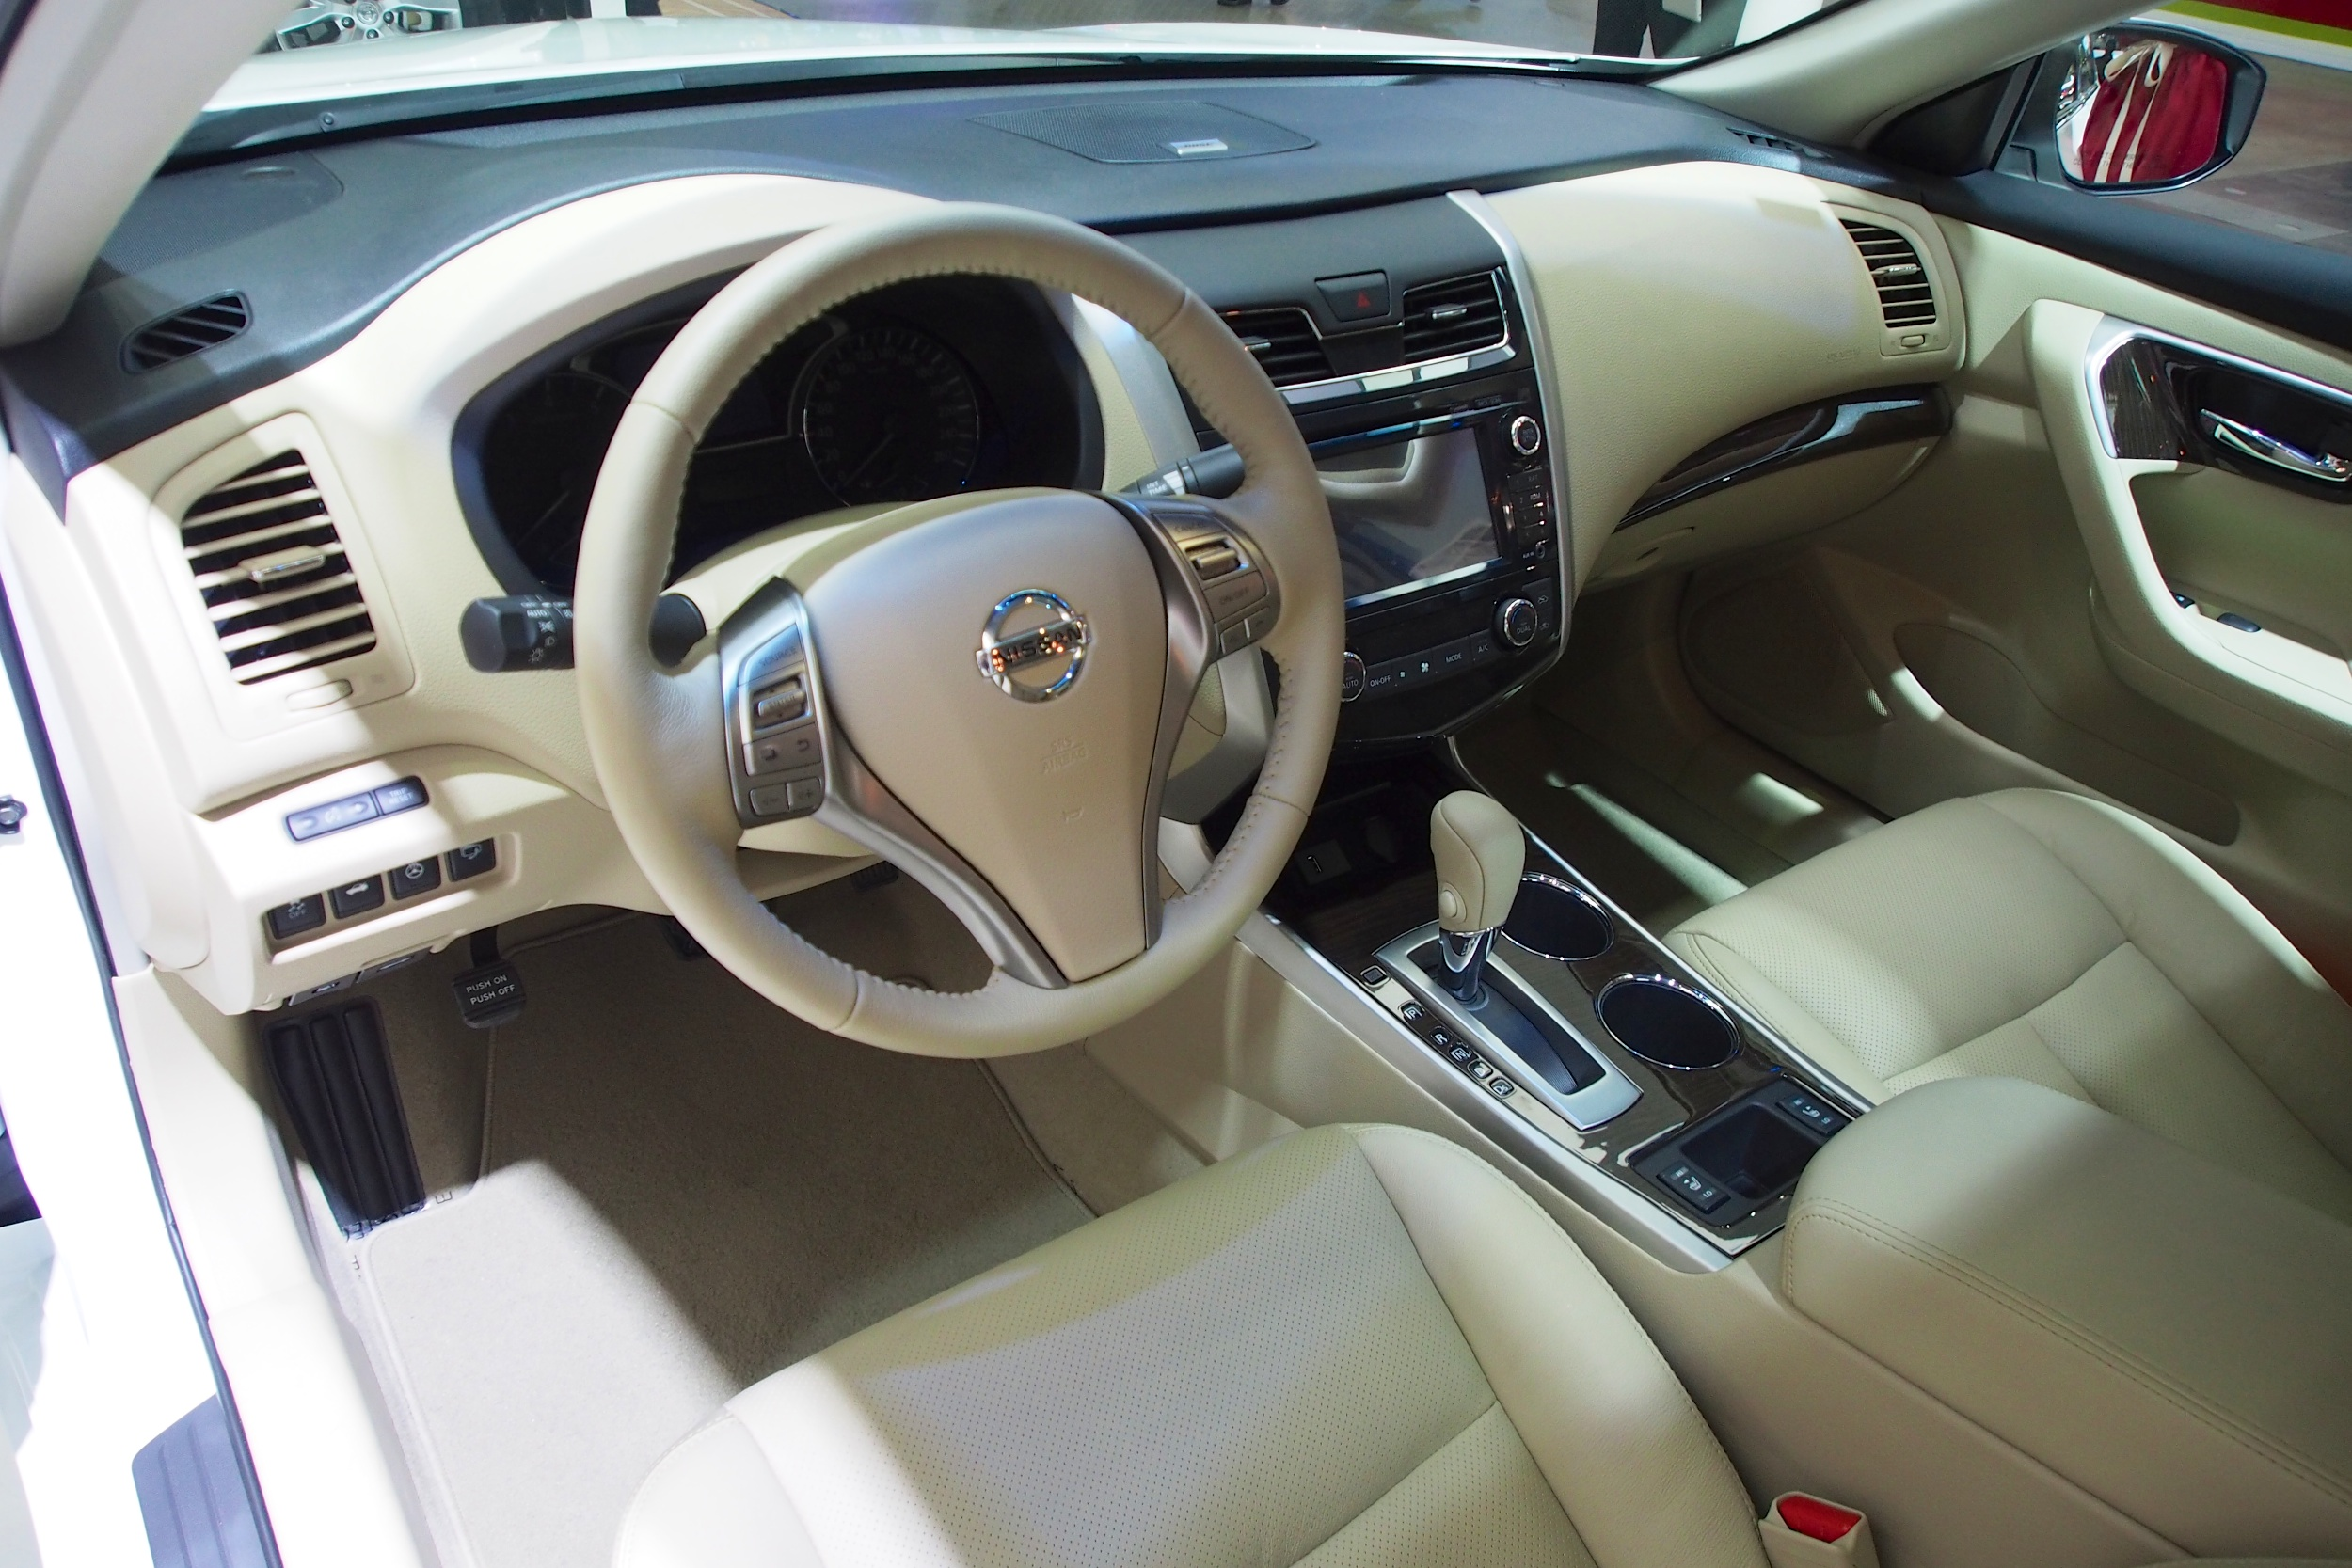 2014 Nissan Teana Showcased As The Nissan Altima At The